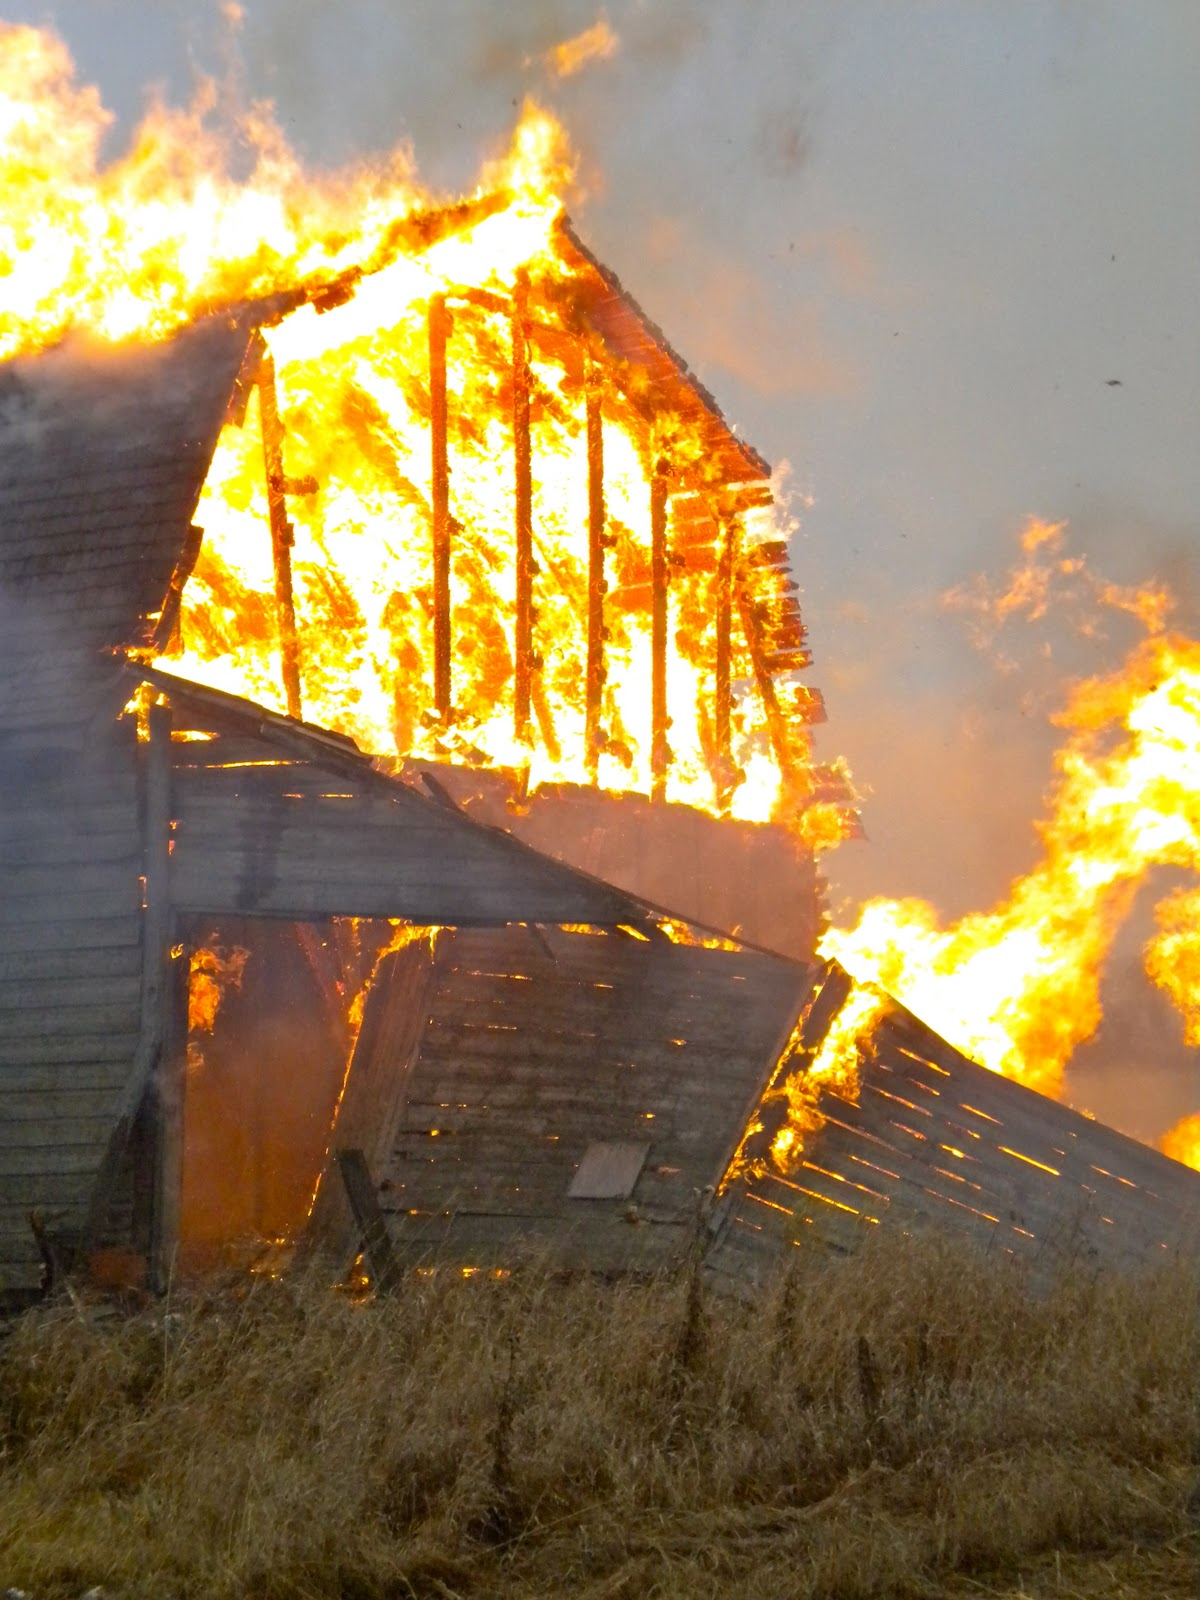 Summary and Analysis of Barn Burning by William Faulkner - Owlcation - Education